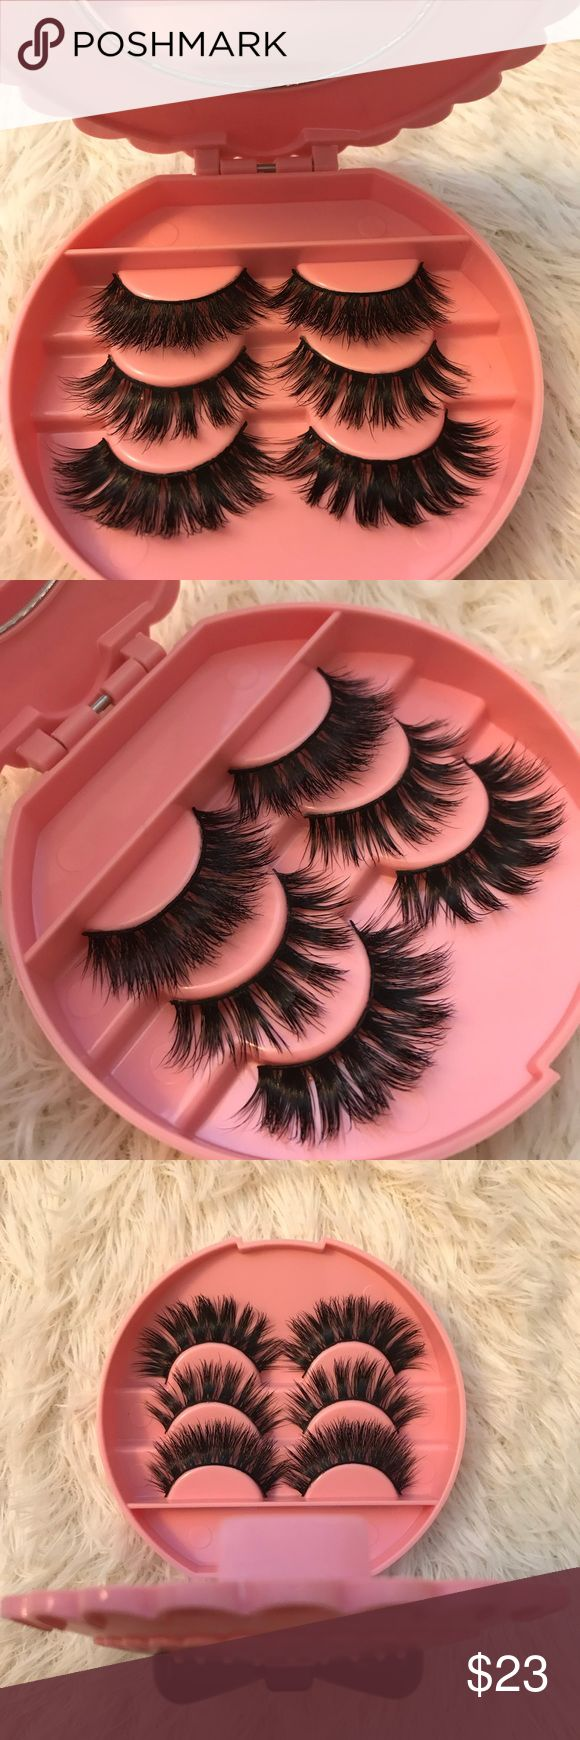 Mink lashes + Eyelash Case w mirror +$2 Add on eyelash Applicator  +$3 Add on eyelash glue Please message me if you want to add them.   ❌No Offers ✅ Bundle &  Save  # tags , Iconic, mink, red cherry eyelashes, house of lashes, doll, kawaii, case, full, natural,  Koko, Ardell, wispies, Demi , makeup, mascara, eyelash applicator, Mykonos Mink , Lashes , wispy ,eyelash case, mink lashes  Ship within 24 hours ❣️  This item is only 1 available ⭐️✨✅ Makeup False Eyelashes